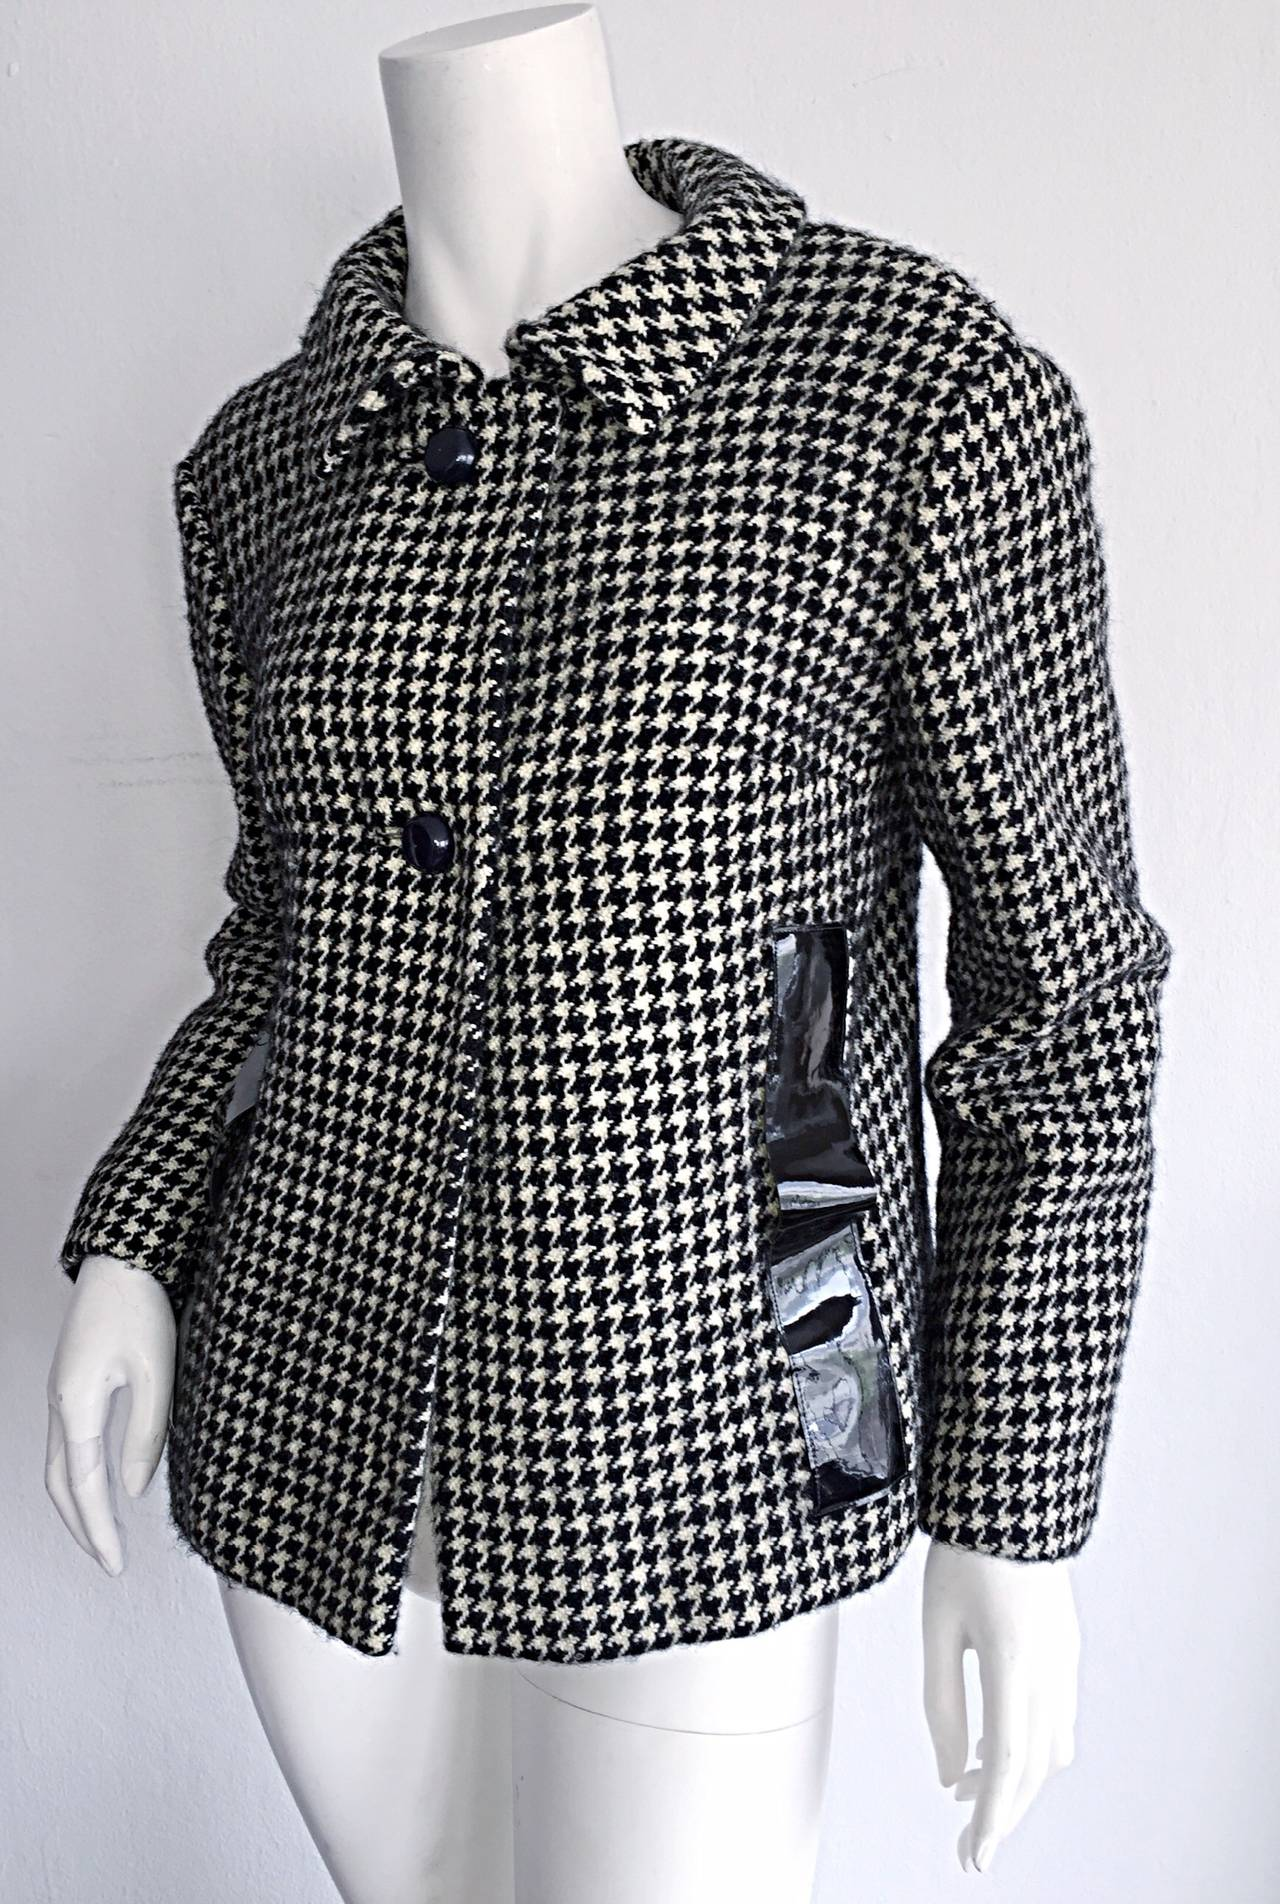 1960s Pierre Cardin Black + White Houndstooth Space Age Jacket For Sale 5